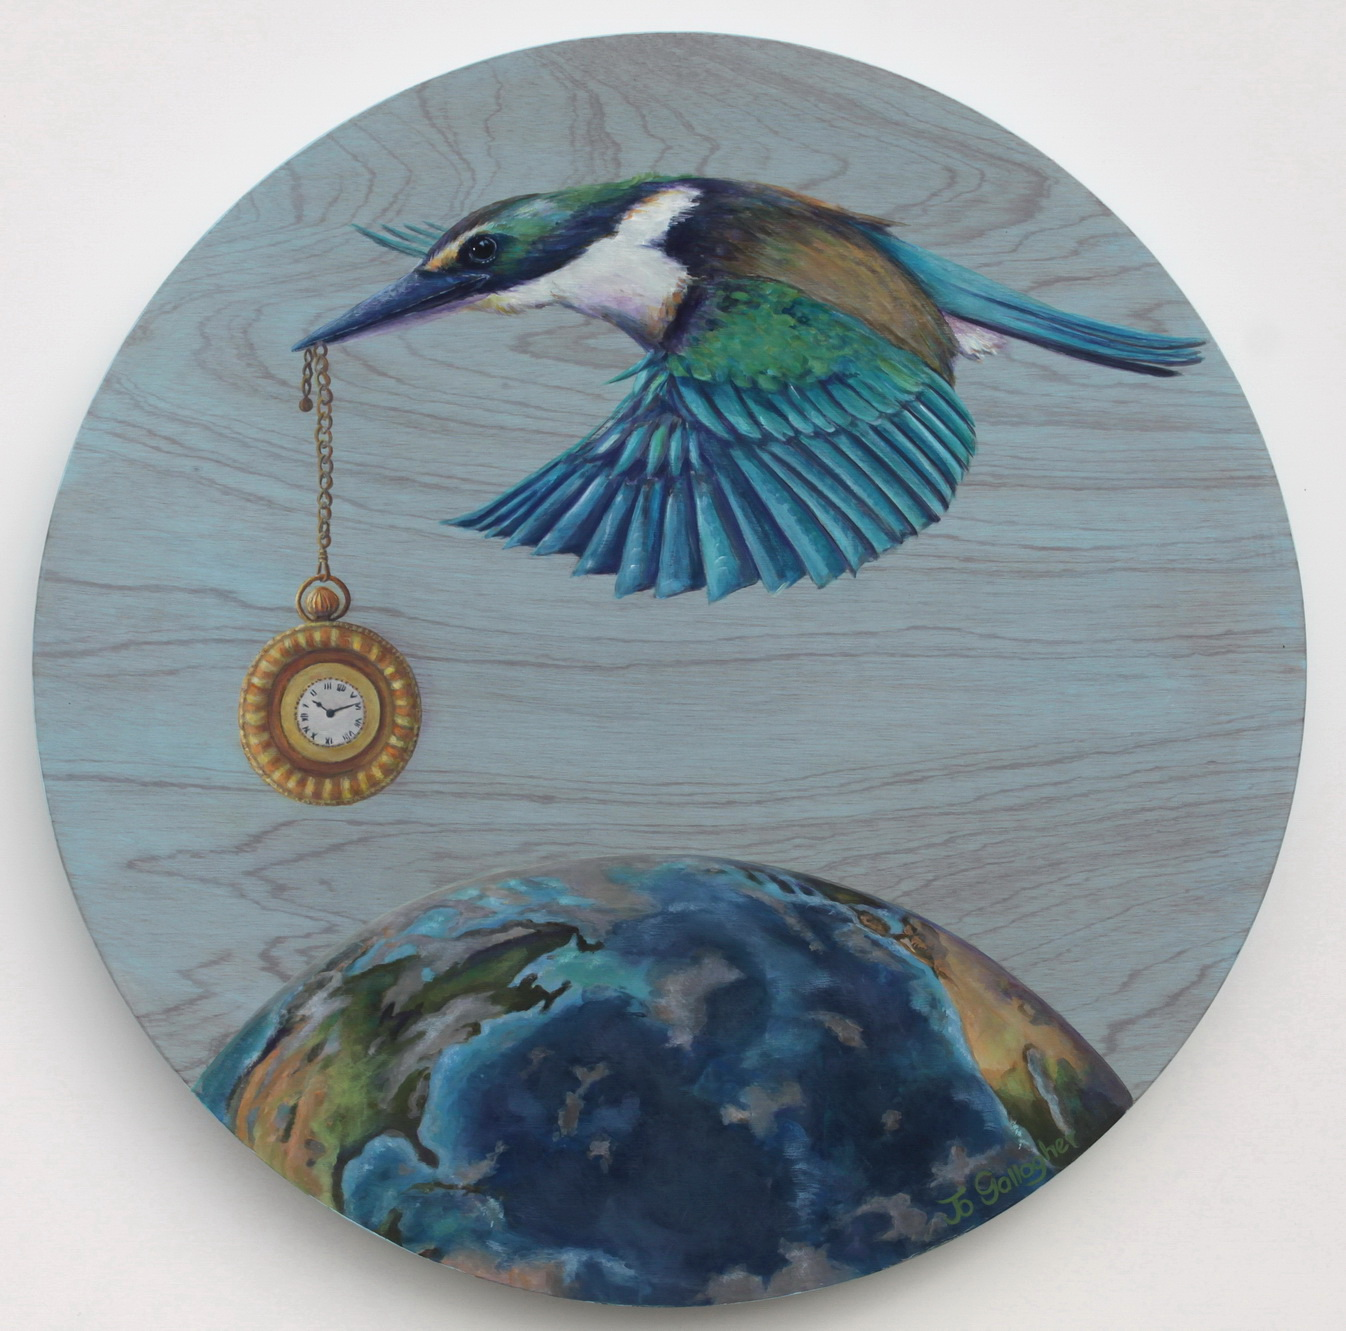 How Time Flies 500mm acrylic on plywood board $895.00